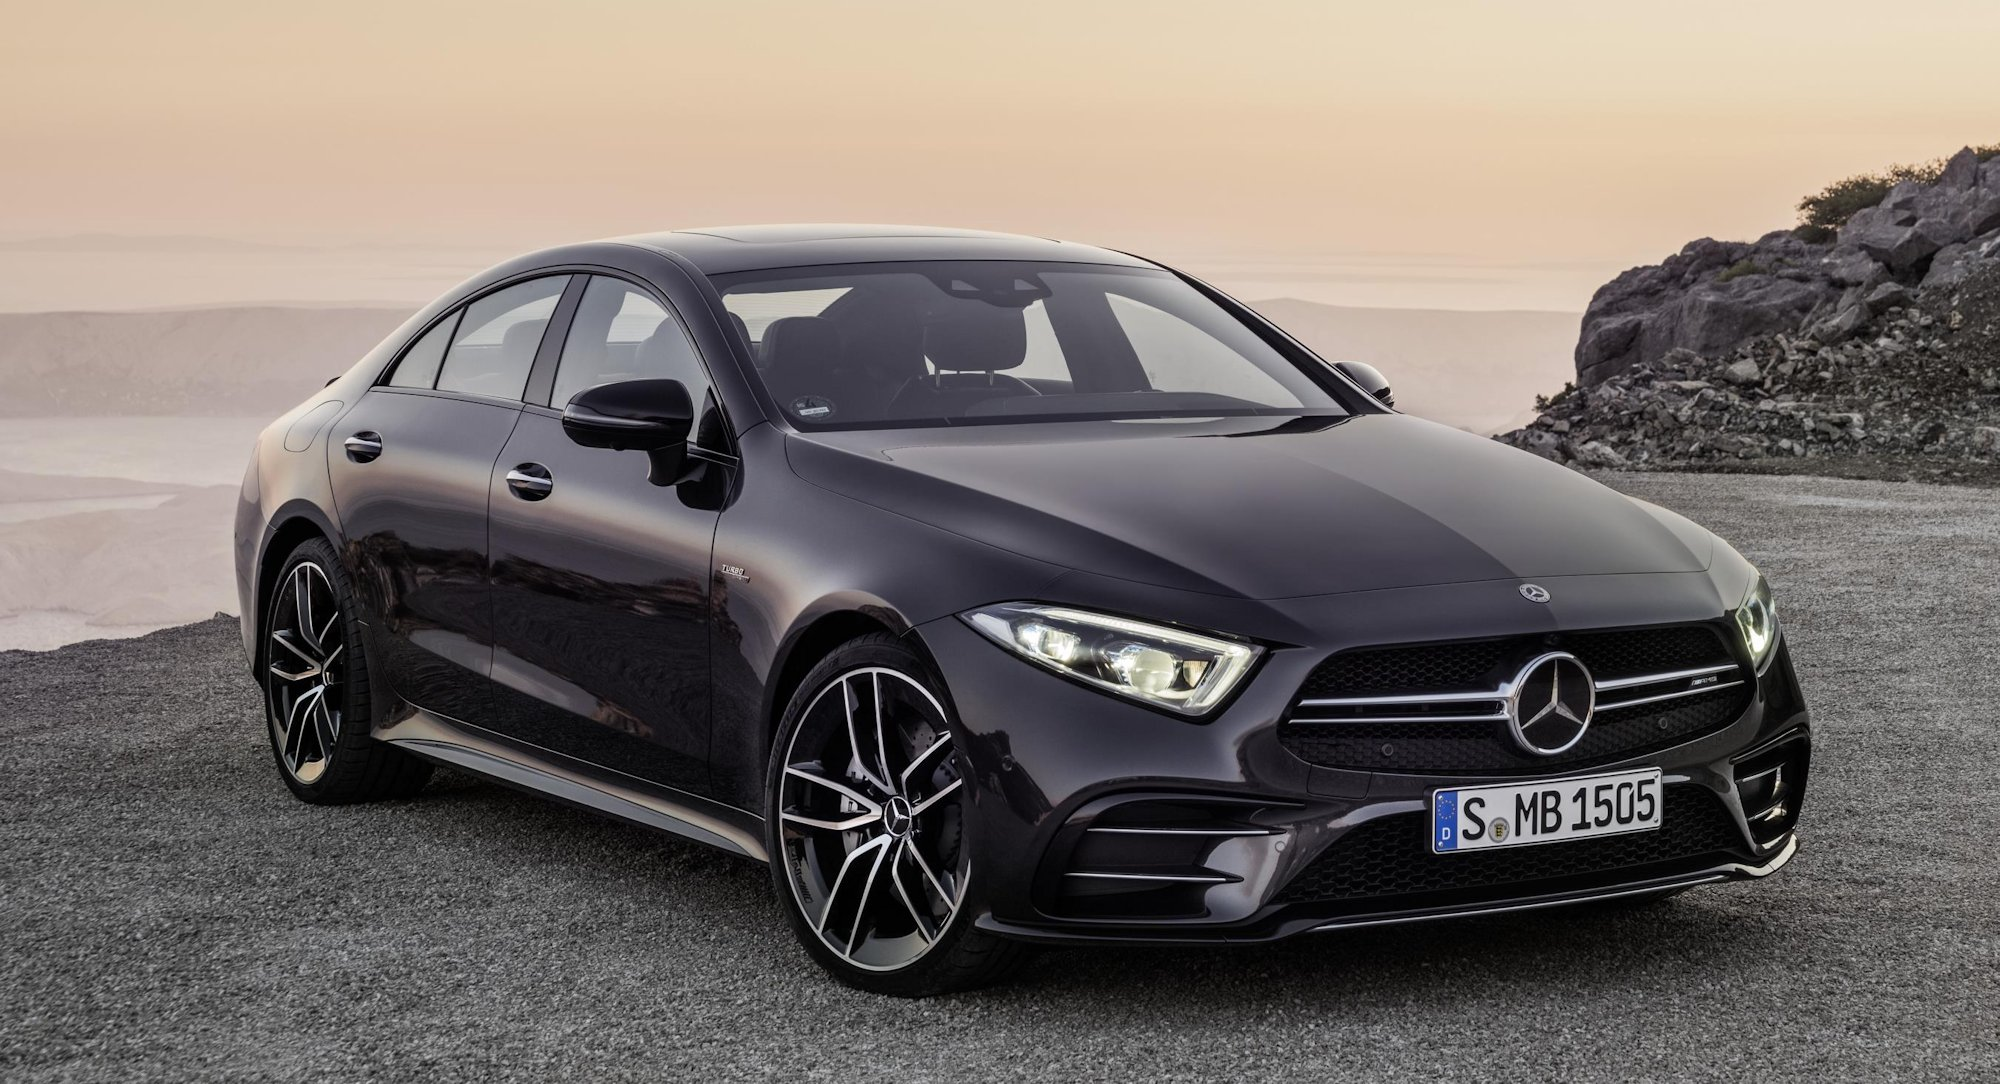 THE NEW 2019 MERCEDES-AMG 53 CLS, E 53 COUPE AND CABRIOLET ...